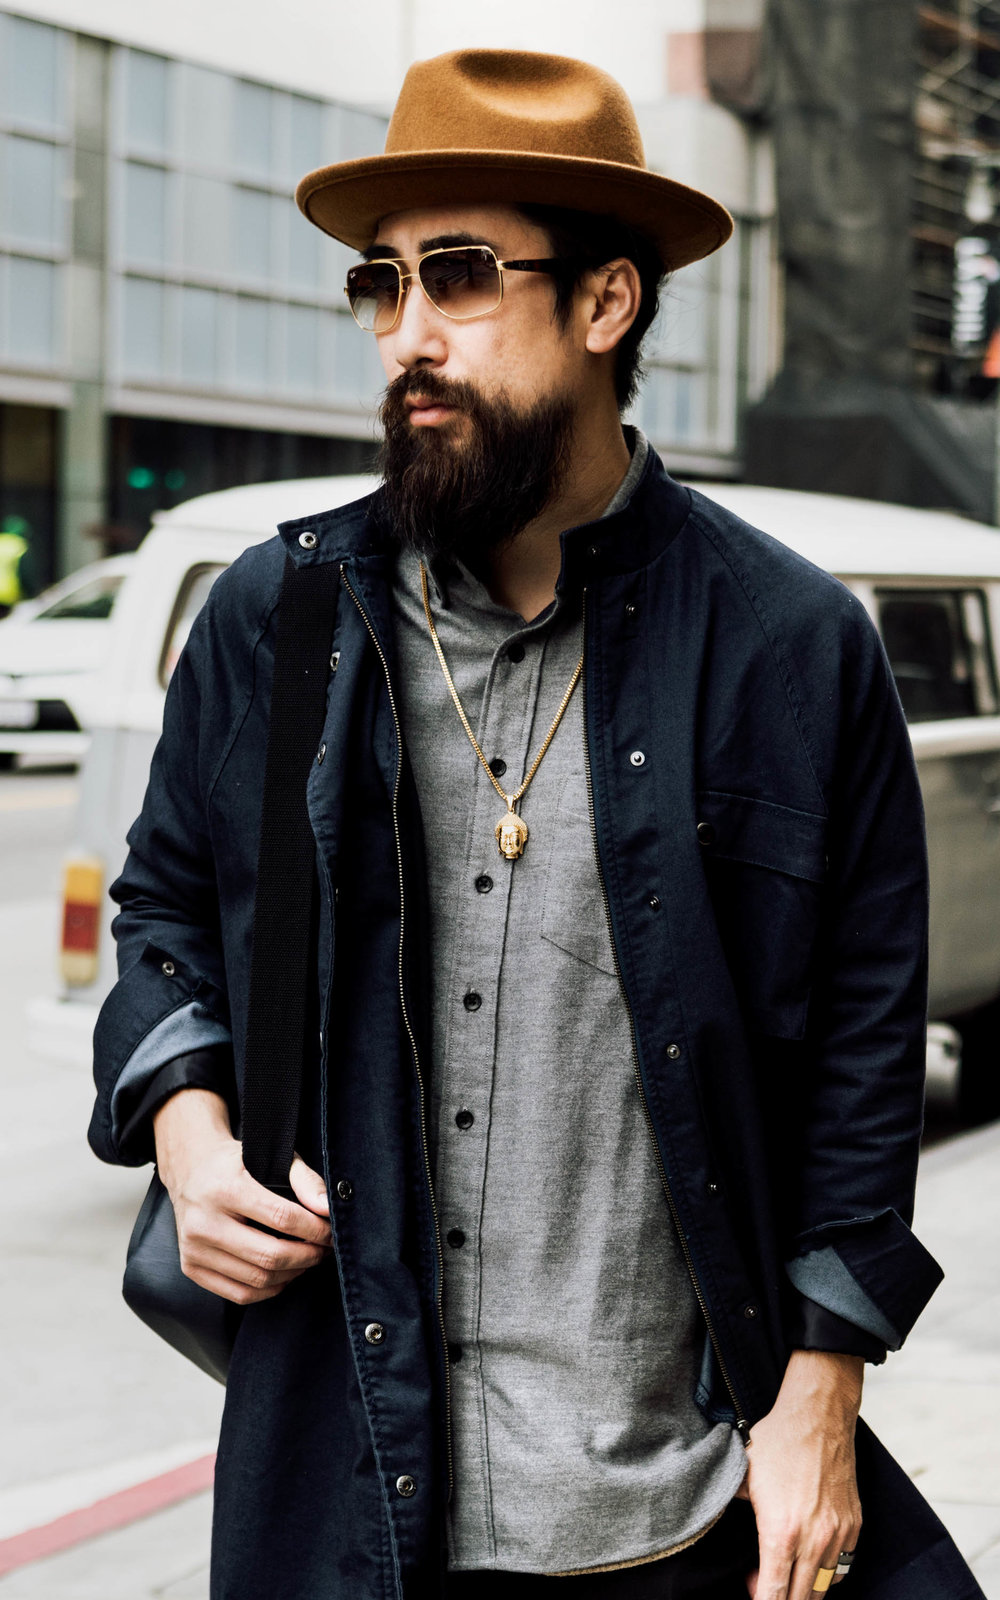 justfeng ryan feng hipster beard asian ootdmen menstyle streetstyle streetfashion los angeles beard